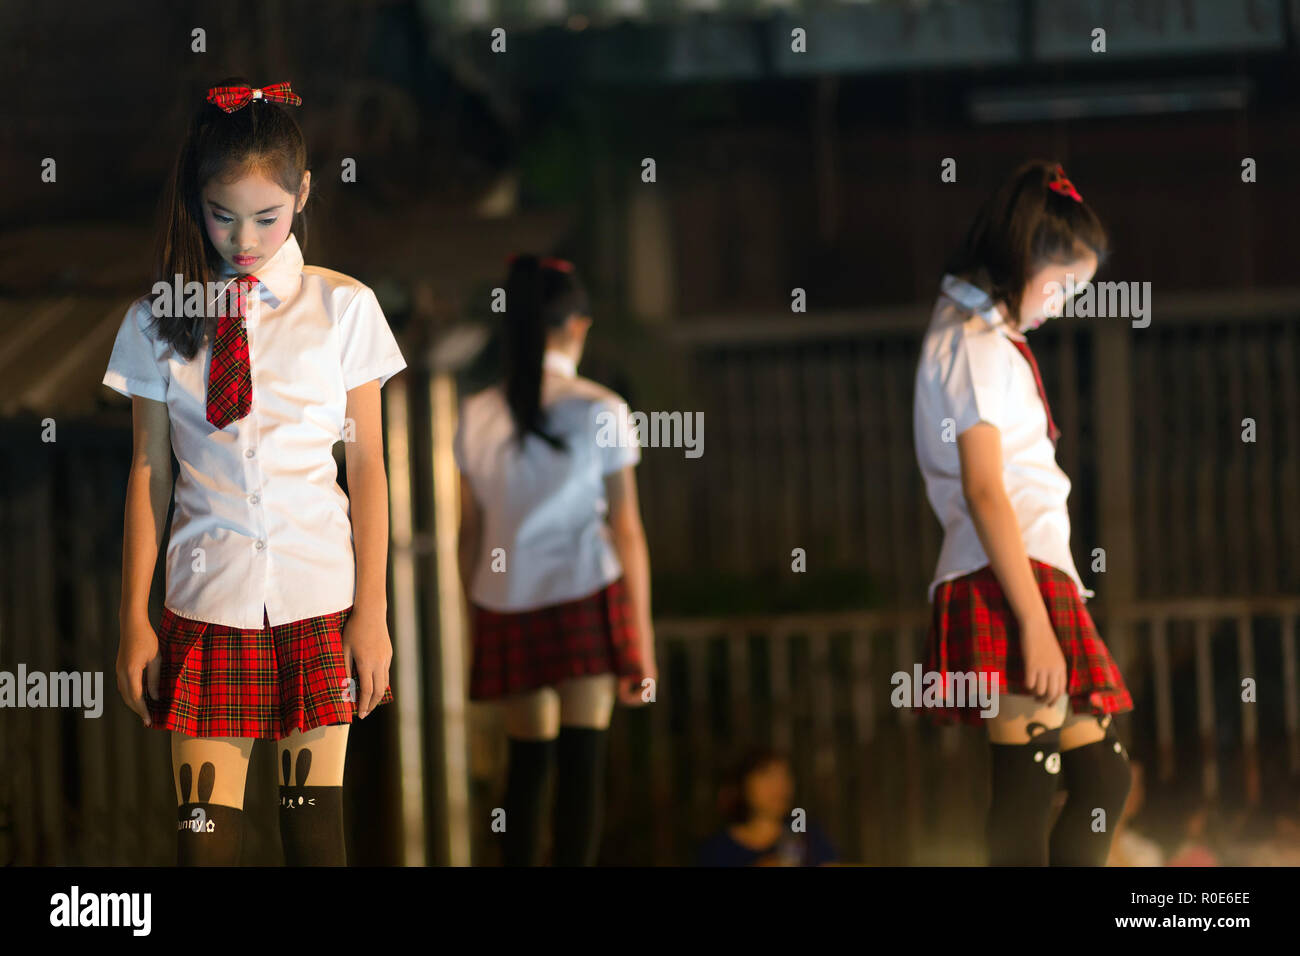 CHIANG MAI, THAILAND, JANUARY 04, 2015 : Girls are performing a Thai pop dance at an outdoor stage during the Saturday night street market in Chiang M - Stock Image